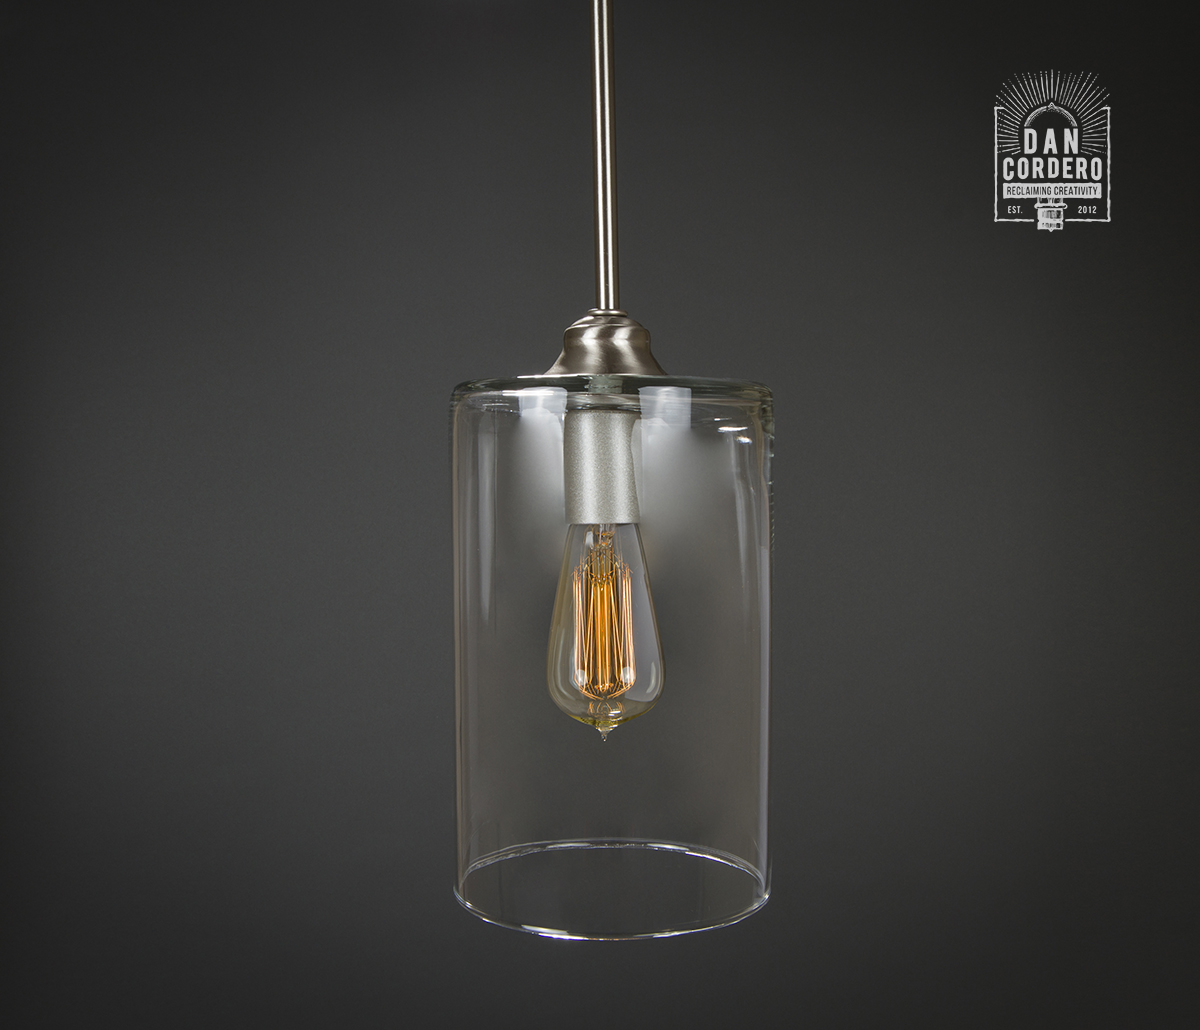 Pendant Lighting Brushed Nickel Pendant Light Fixture Edison Bulb Brushed Nickel